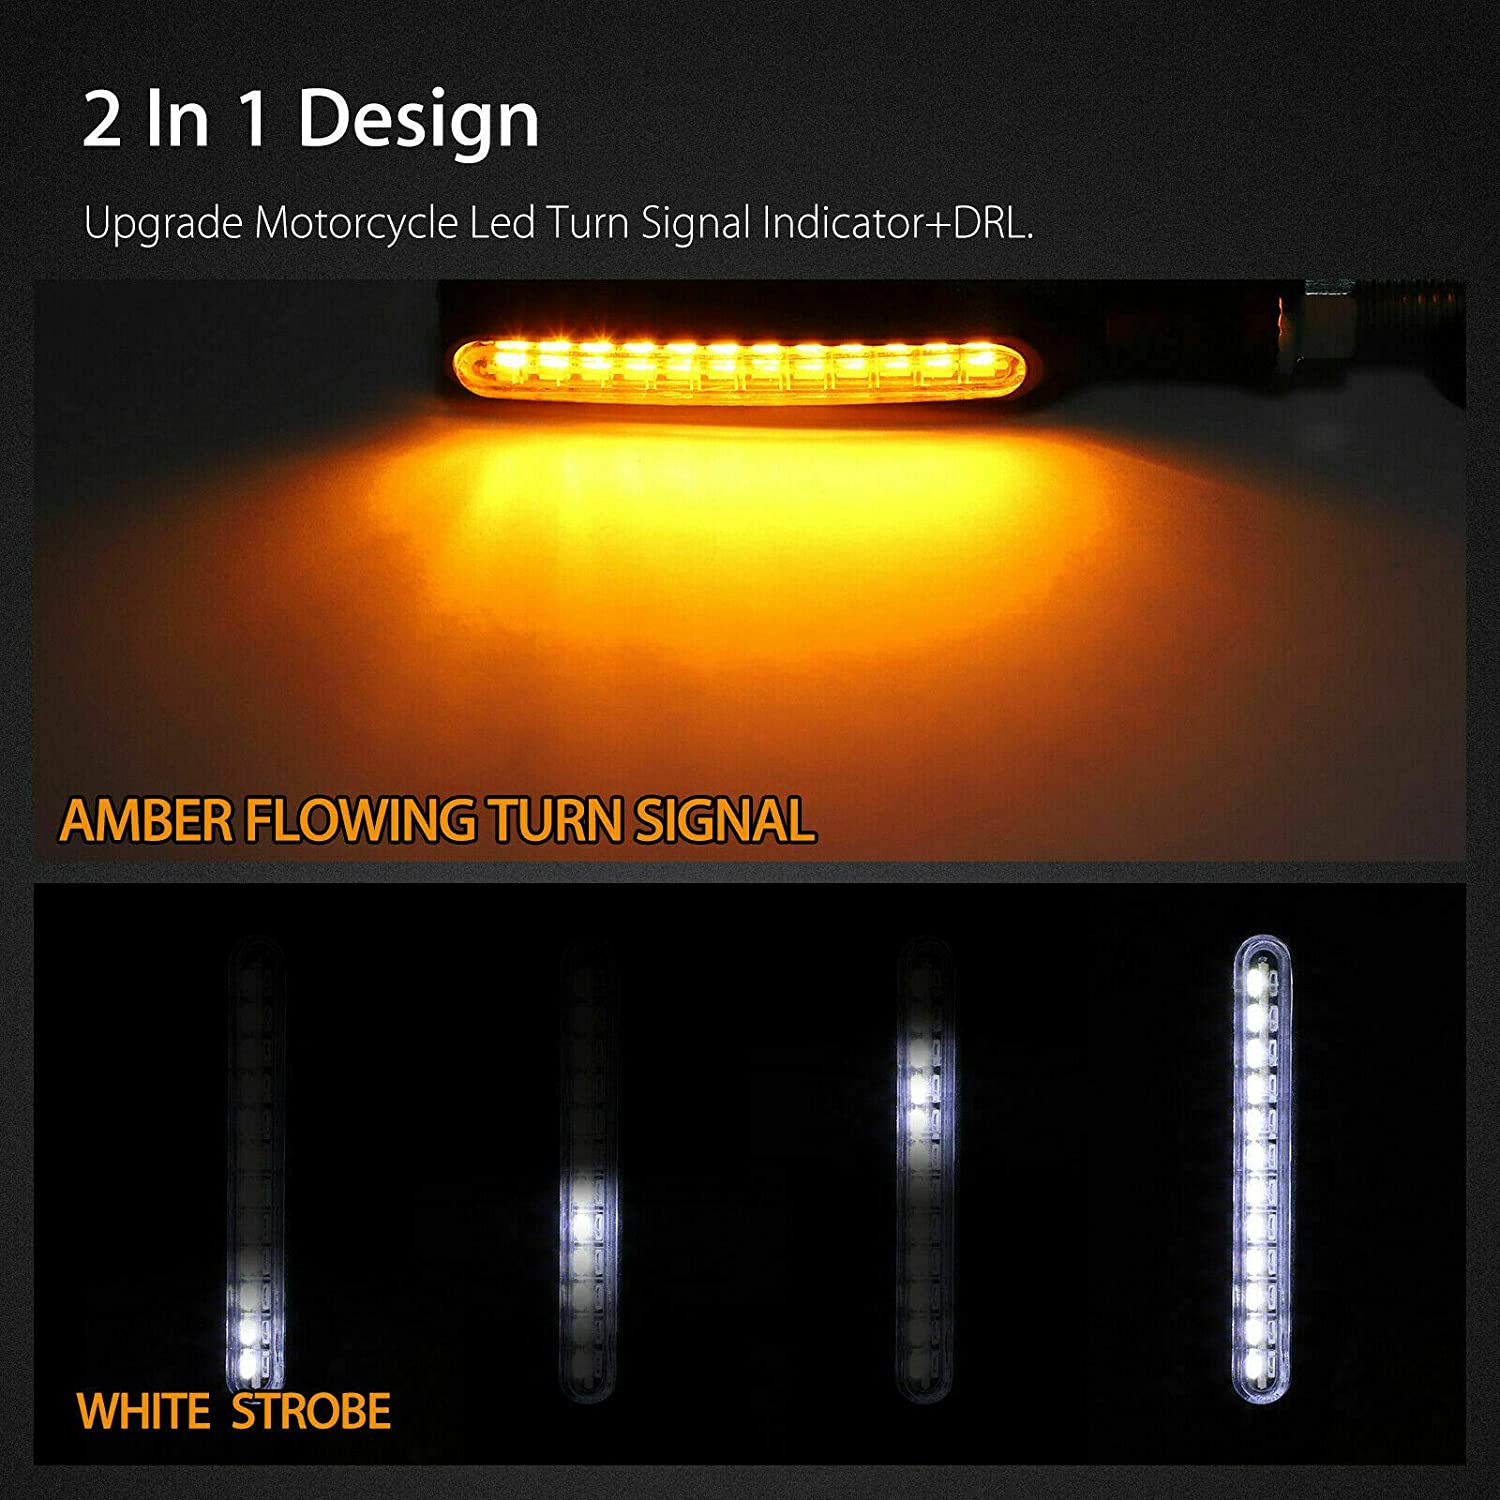 NUOBEIER 24Led Motorcycle Turn signal Light Tail Light Warning Light Modified Motorcycle Indicator Brake Lights /& Daytime Running Lights,Suitable for all riding motorcyclesBX-Red//Amber(2PCS)